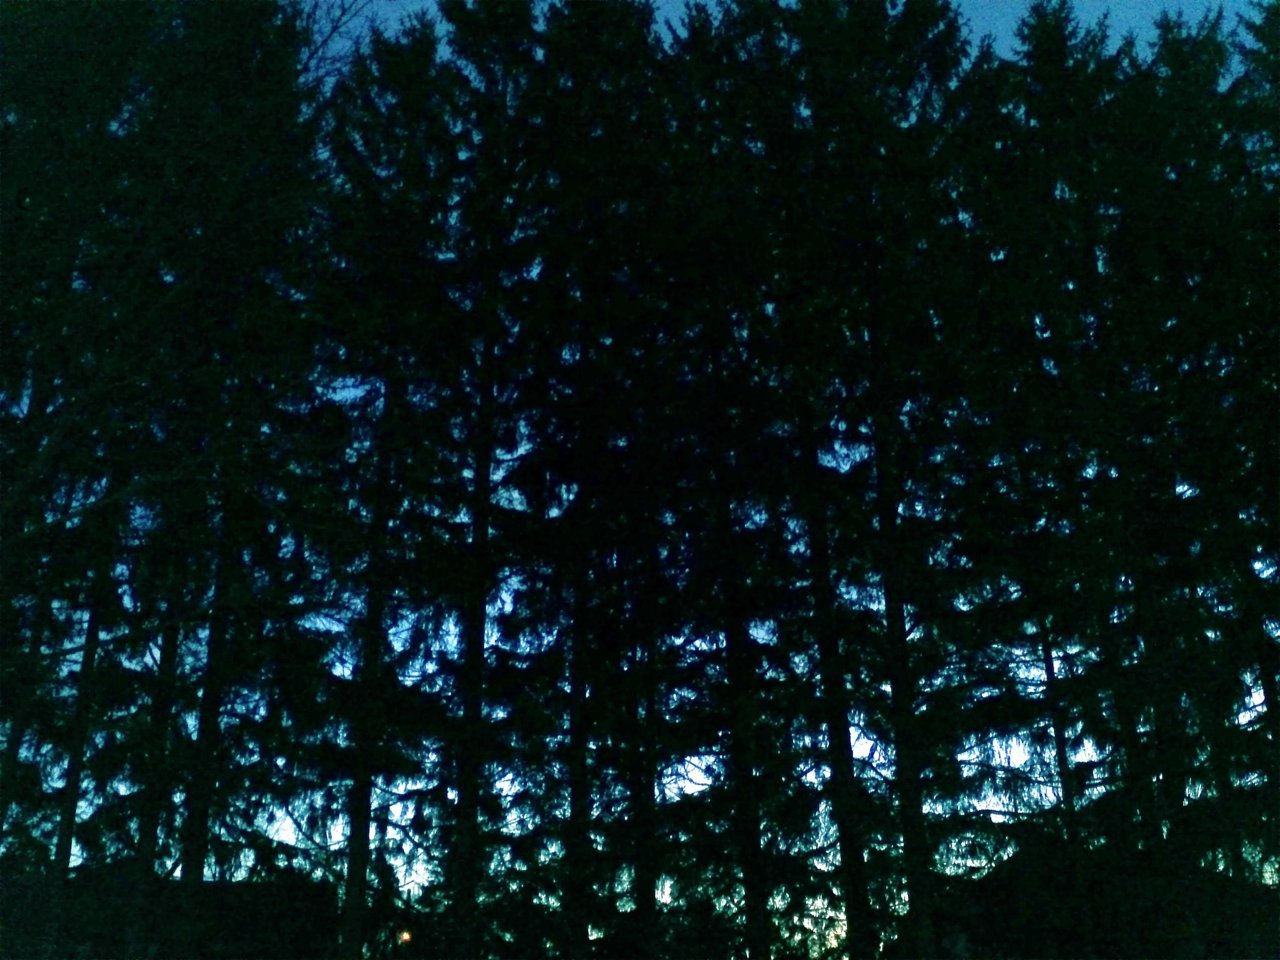 night trees